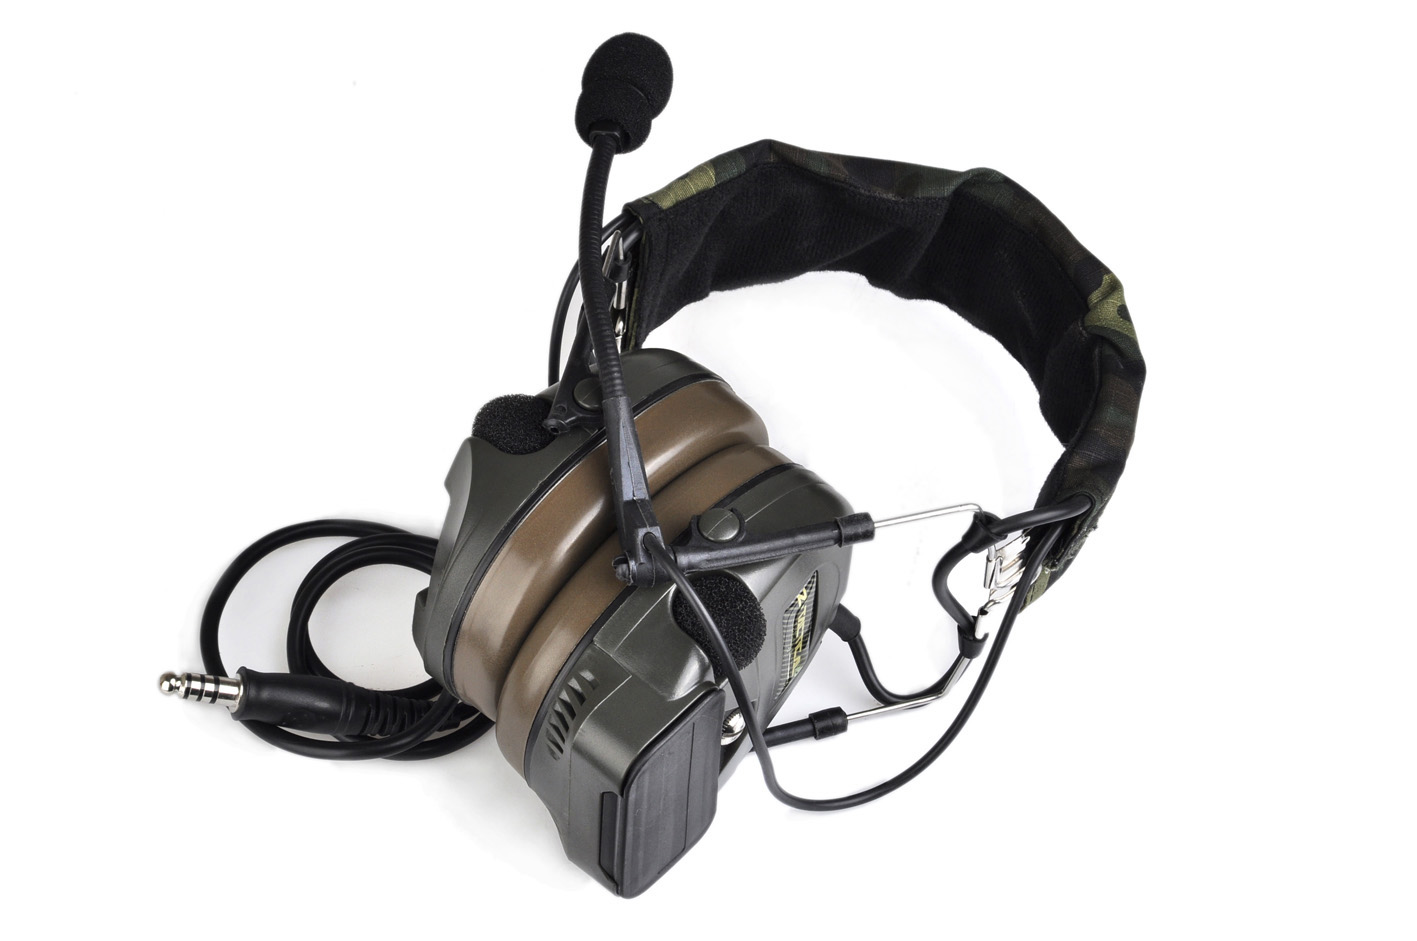 Z-TAC Comtac-I/C1 dual microphone active pickup noise reduction tactical headset 4 generation Z054 stereo